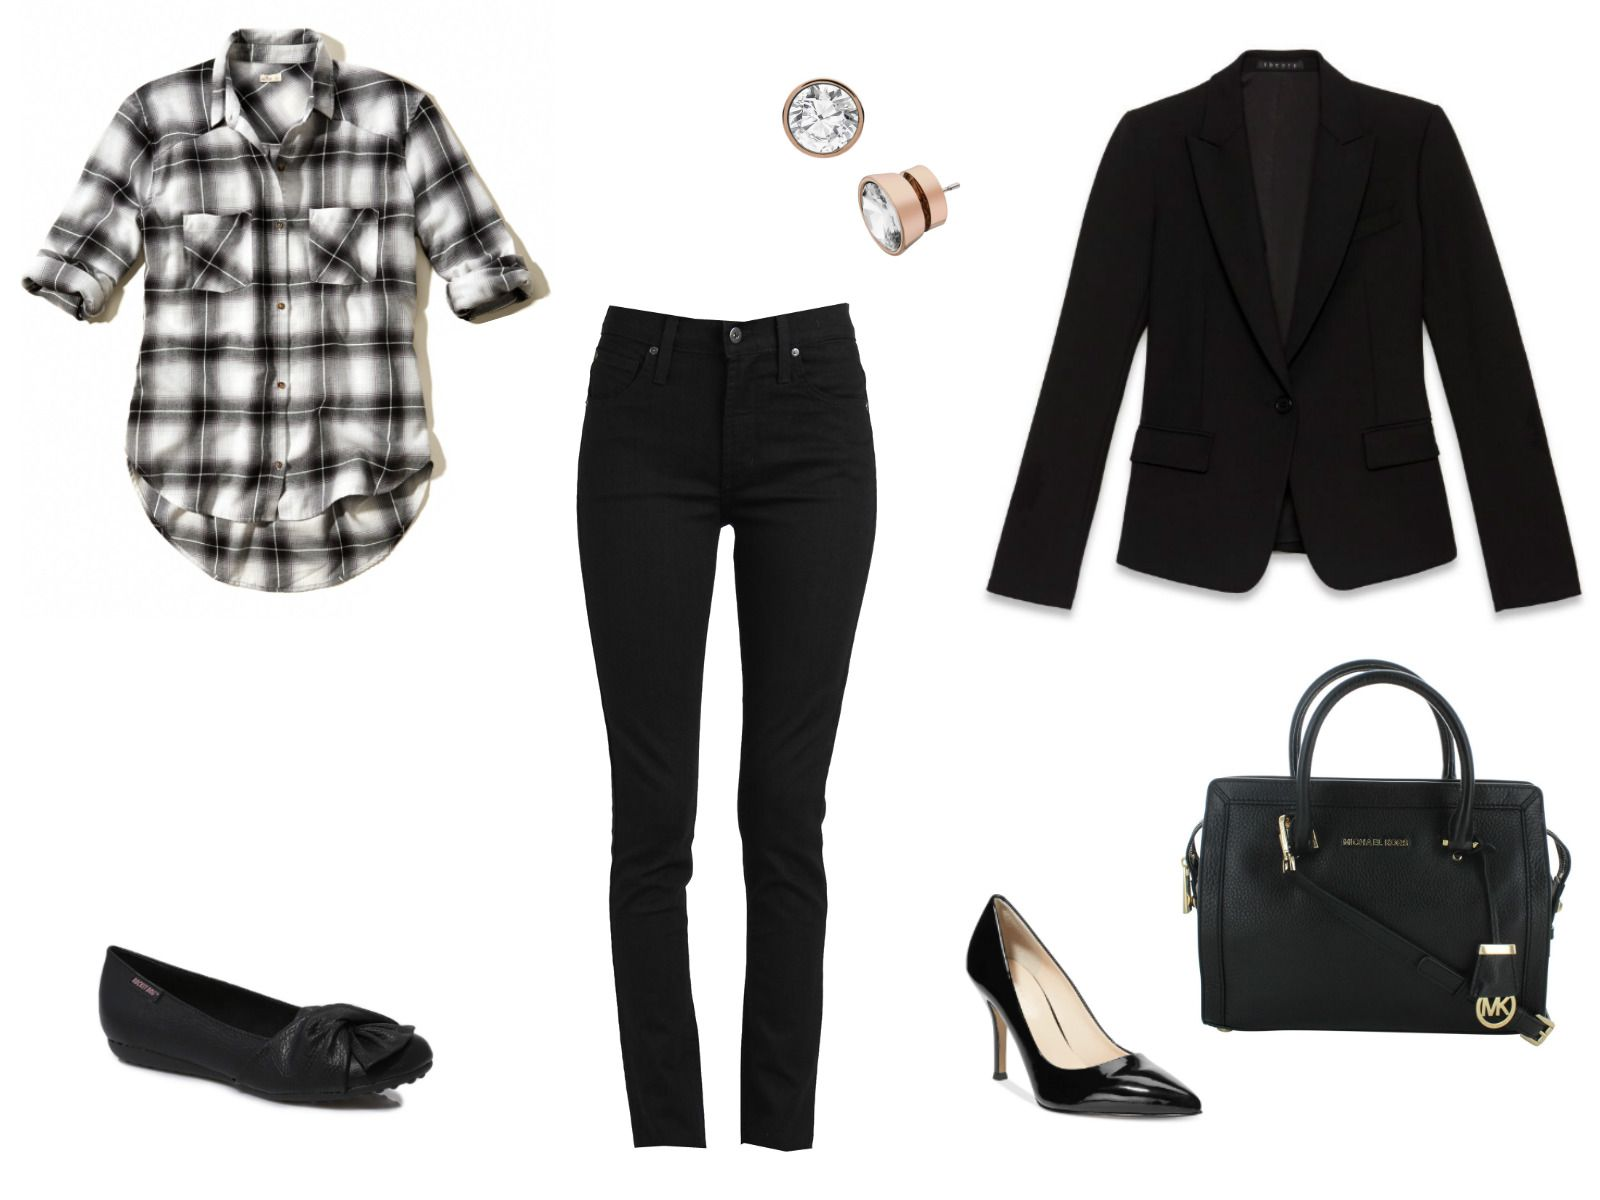 Black and white denim and plaid outfit ideas